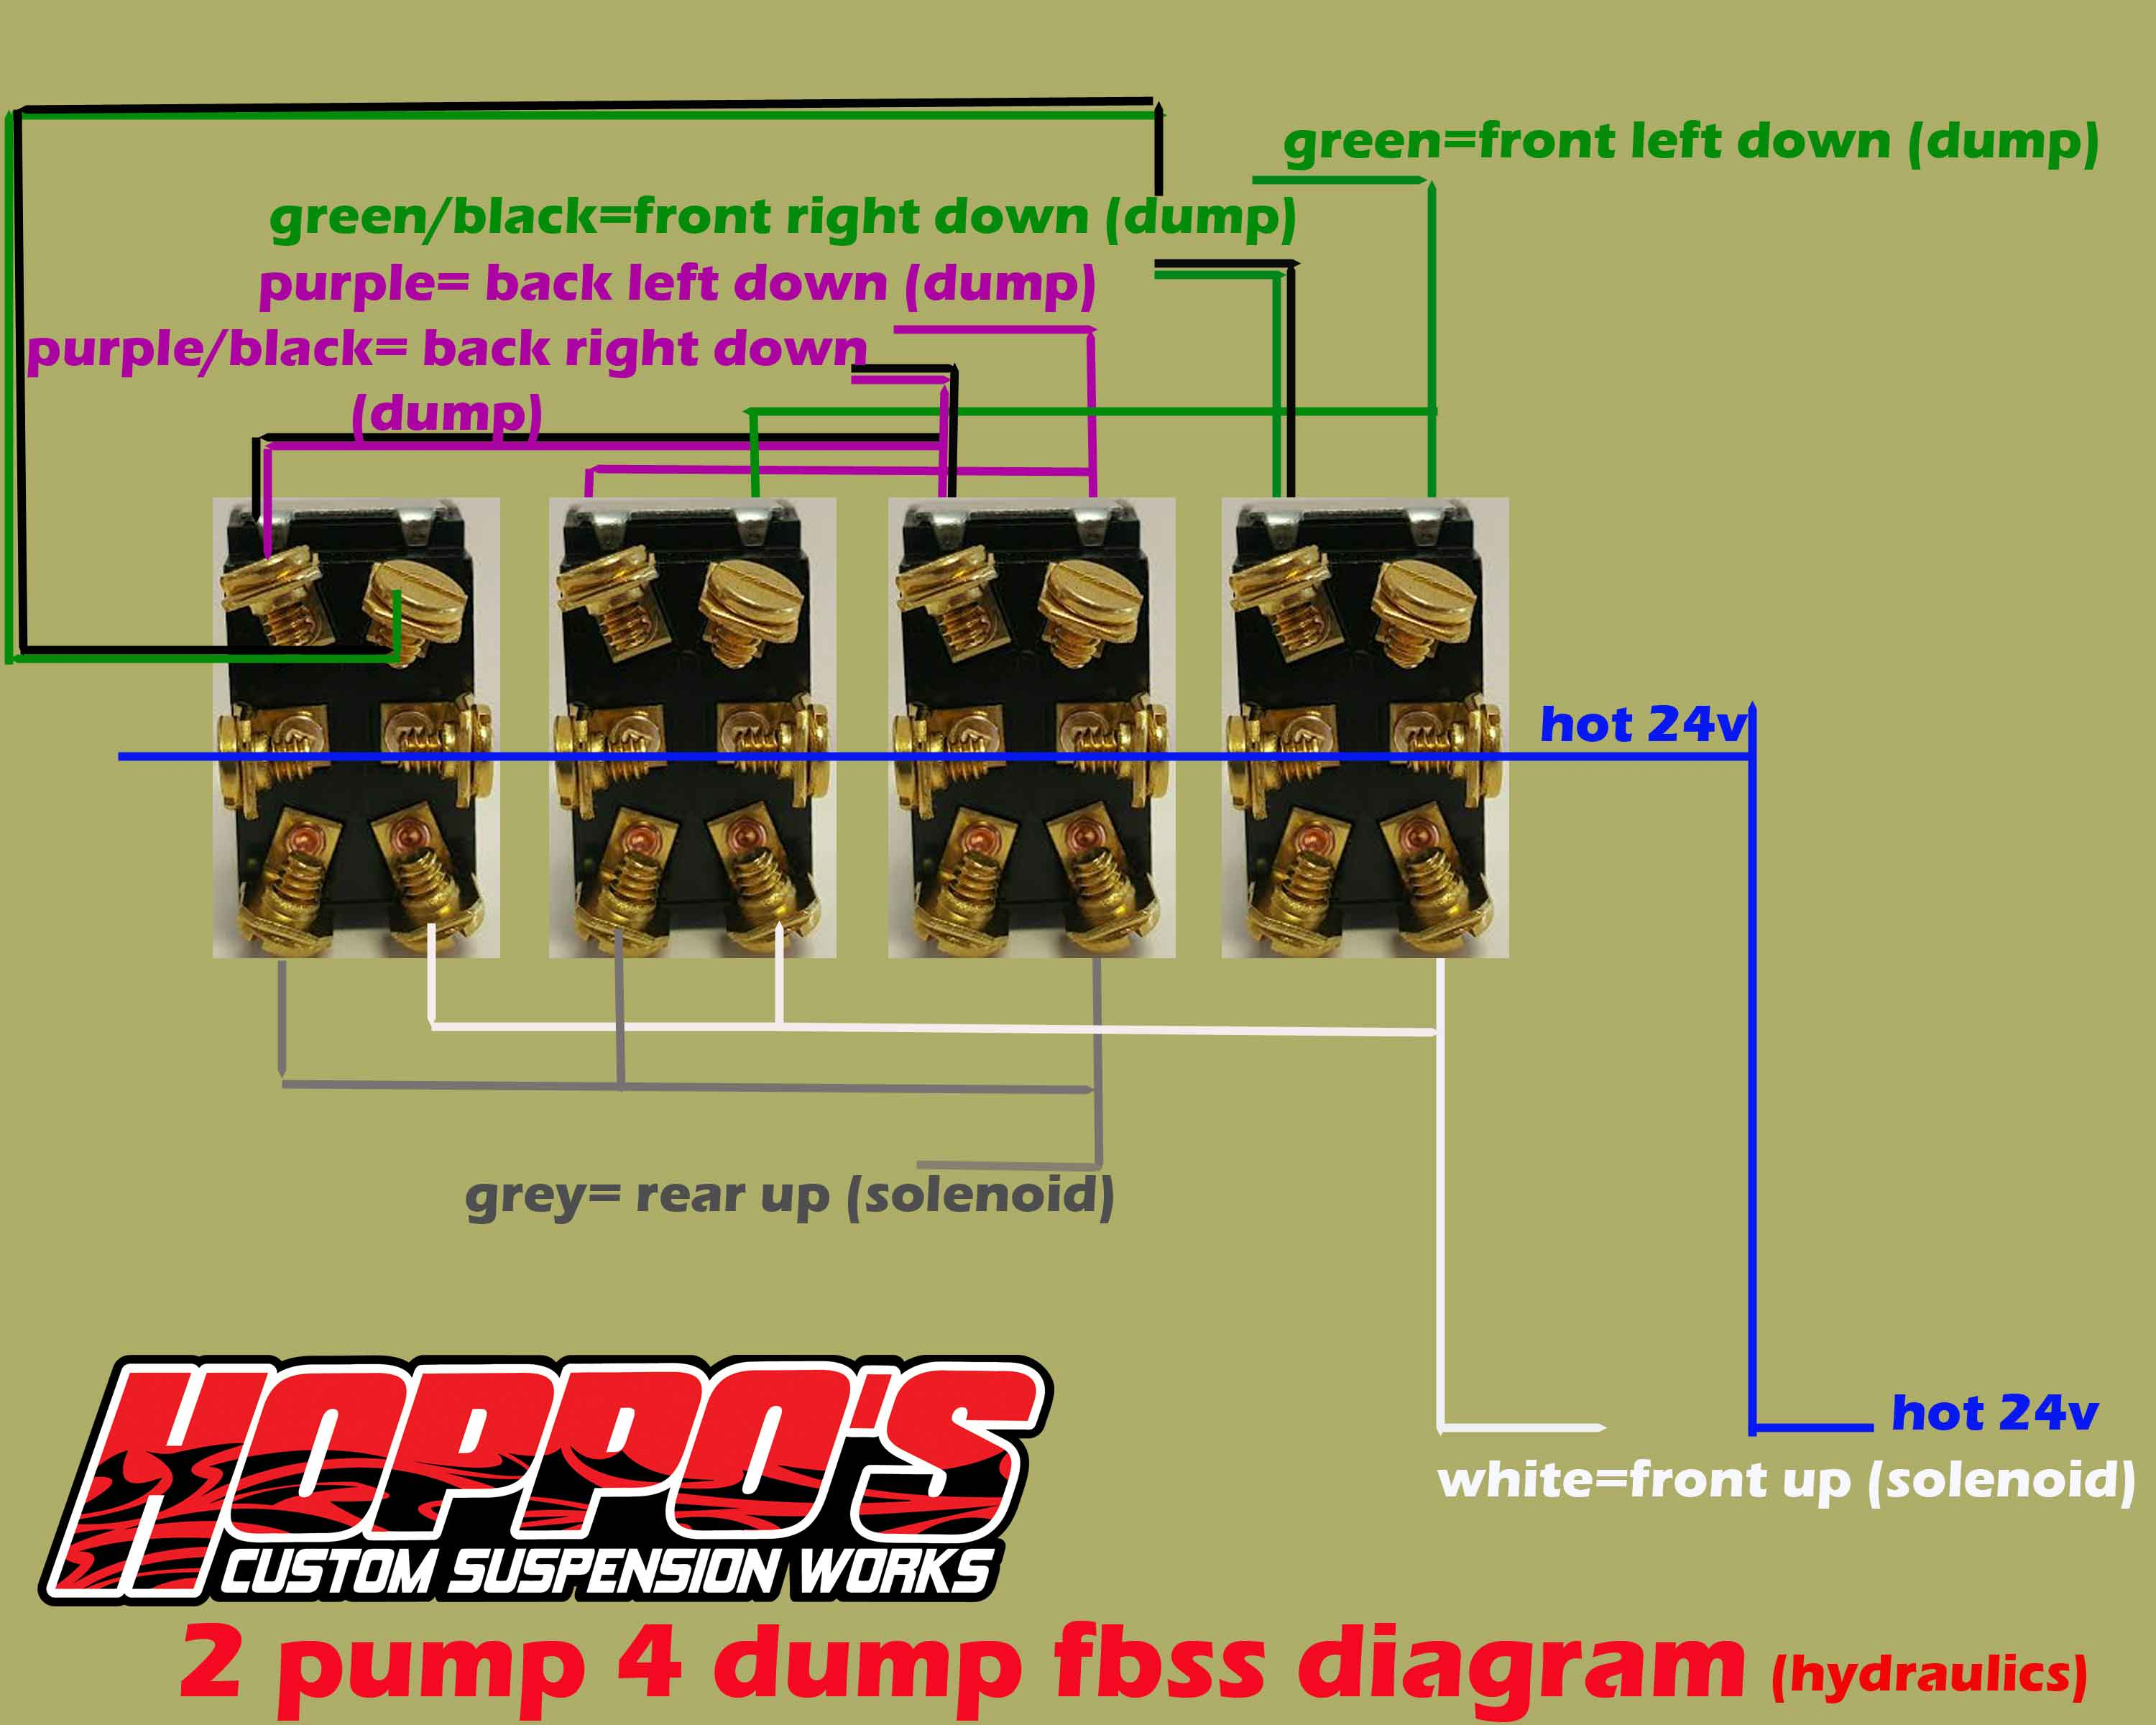 fbss hydro wiring diagram hydraulic tech lowrider hydraulic solenoid wiring diagram at mr168.co